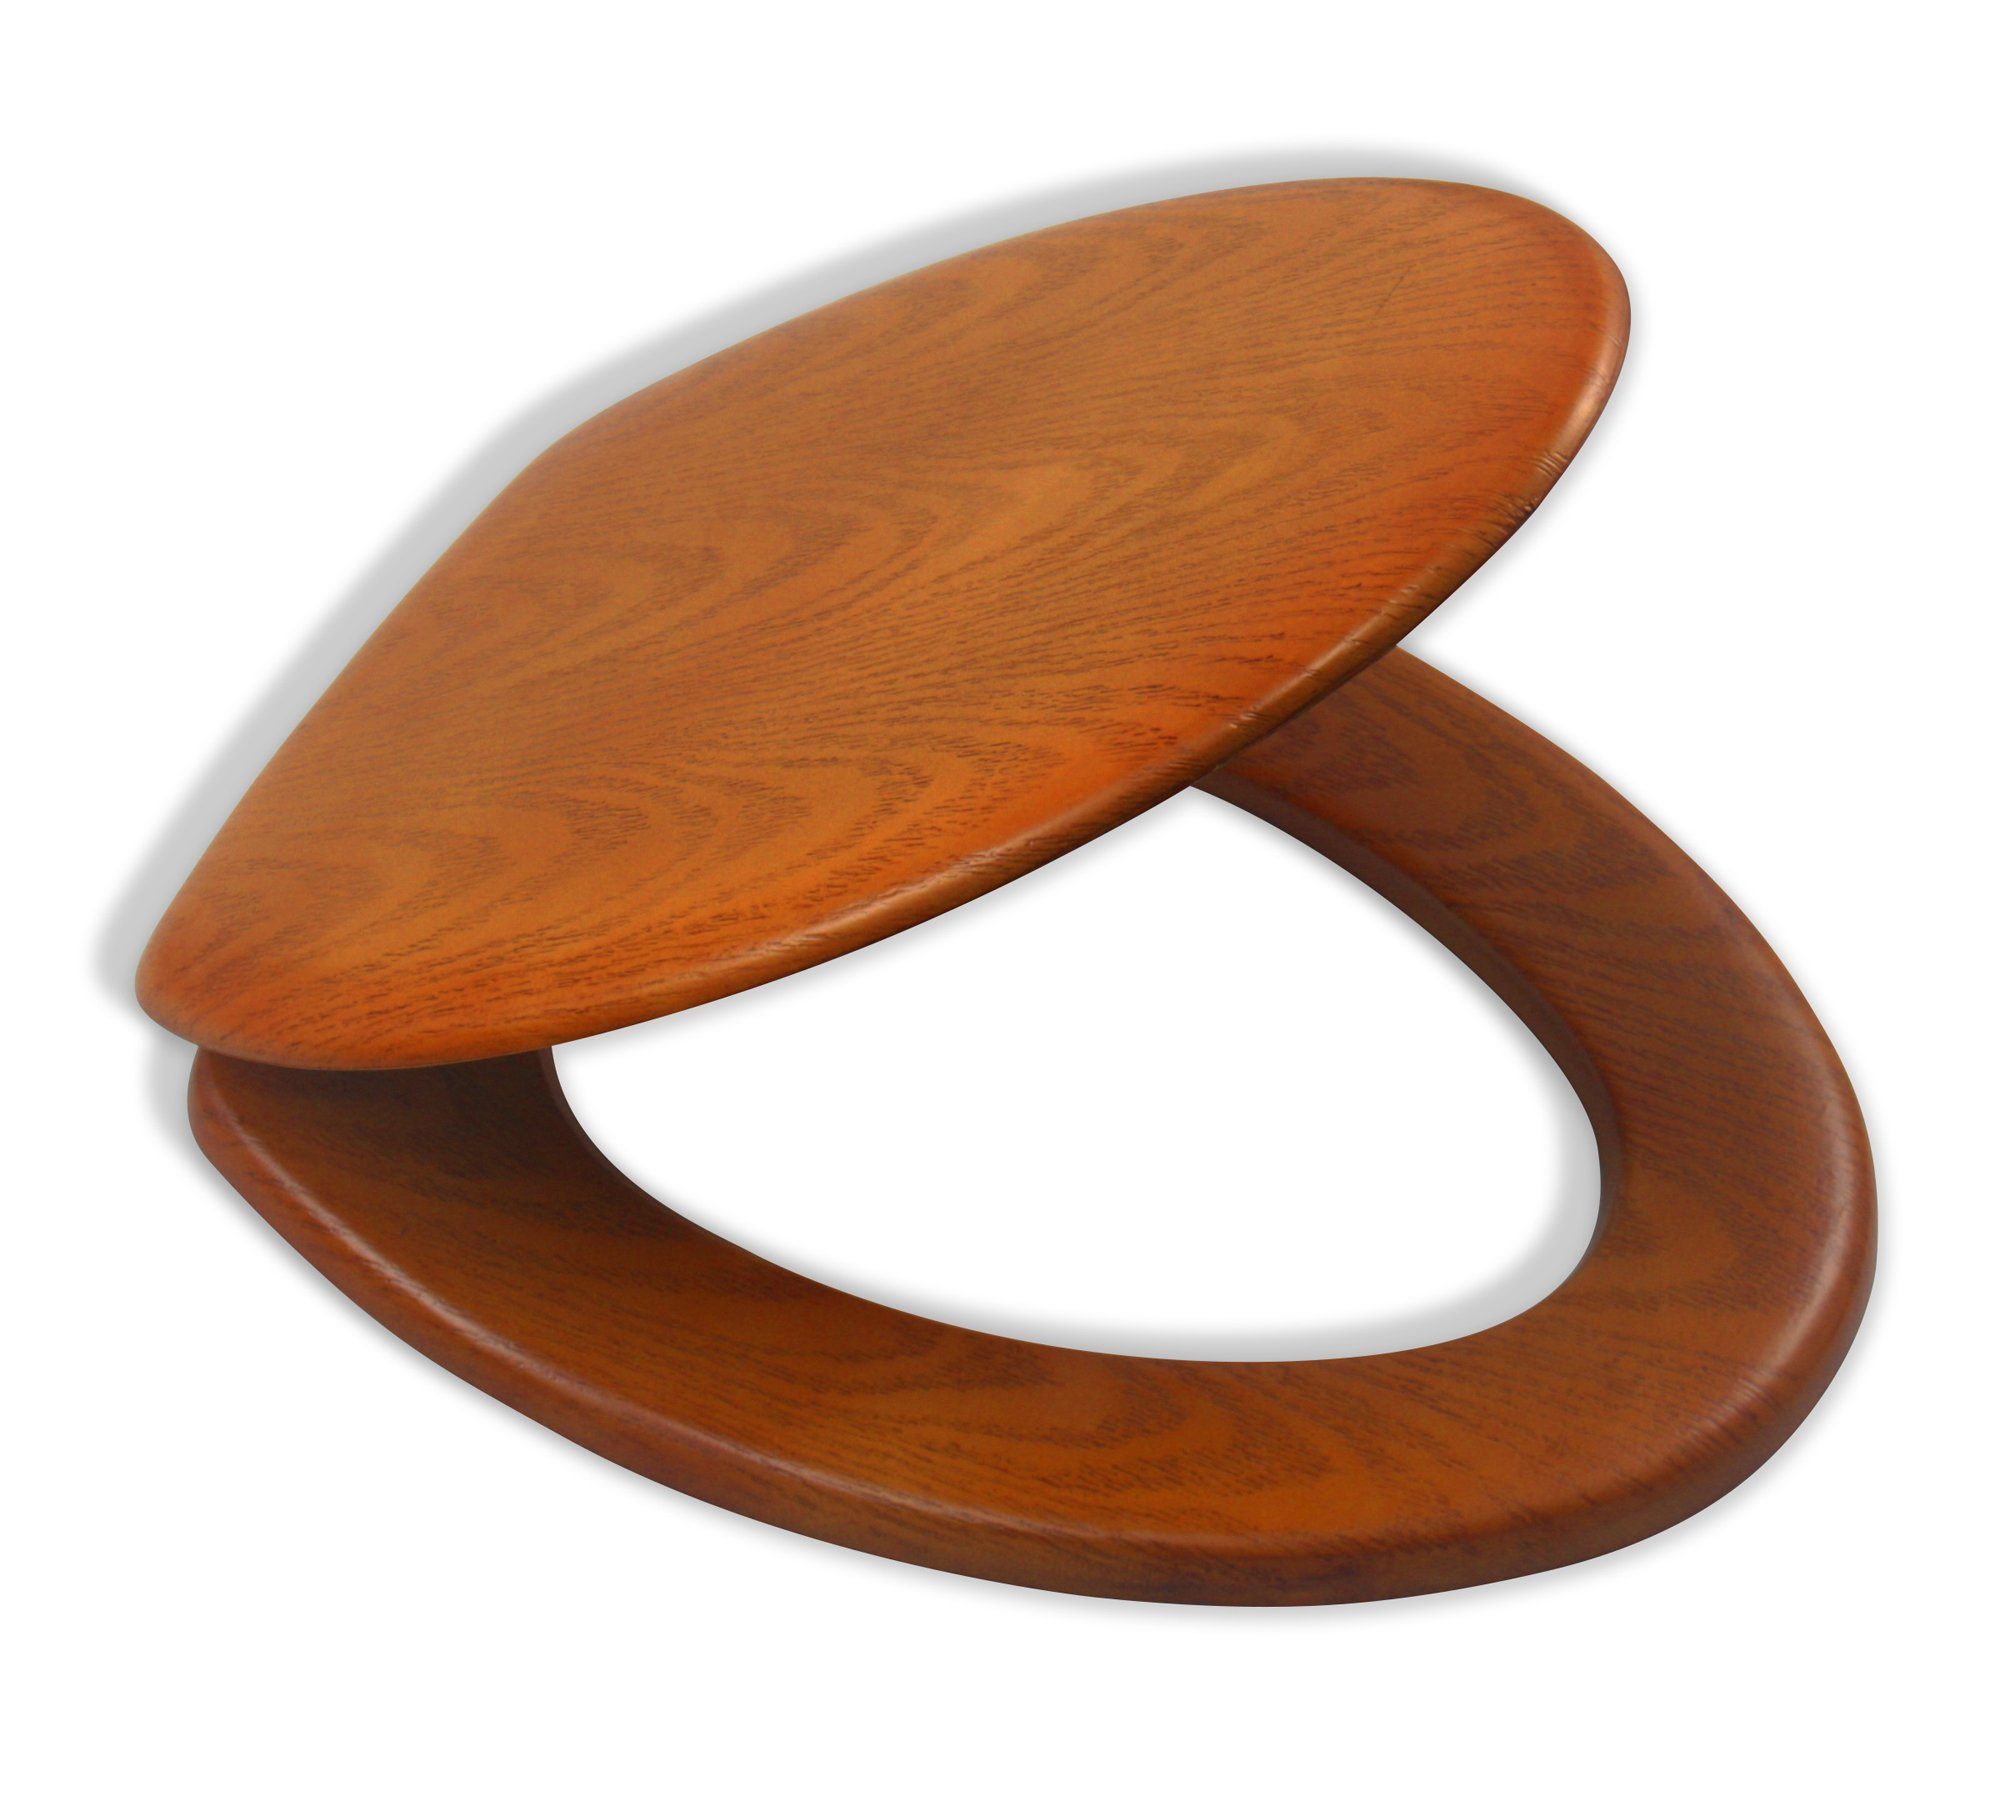 LDR 050 1750CP Elongated Molded Wood Toilet Seat with Chrome Hinges Oak Style Finish